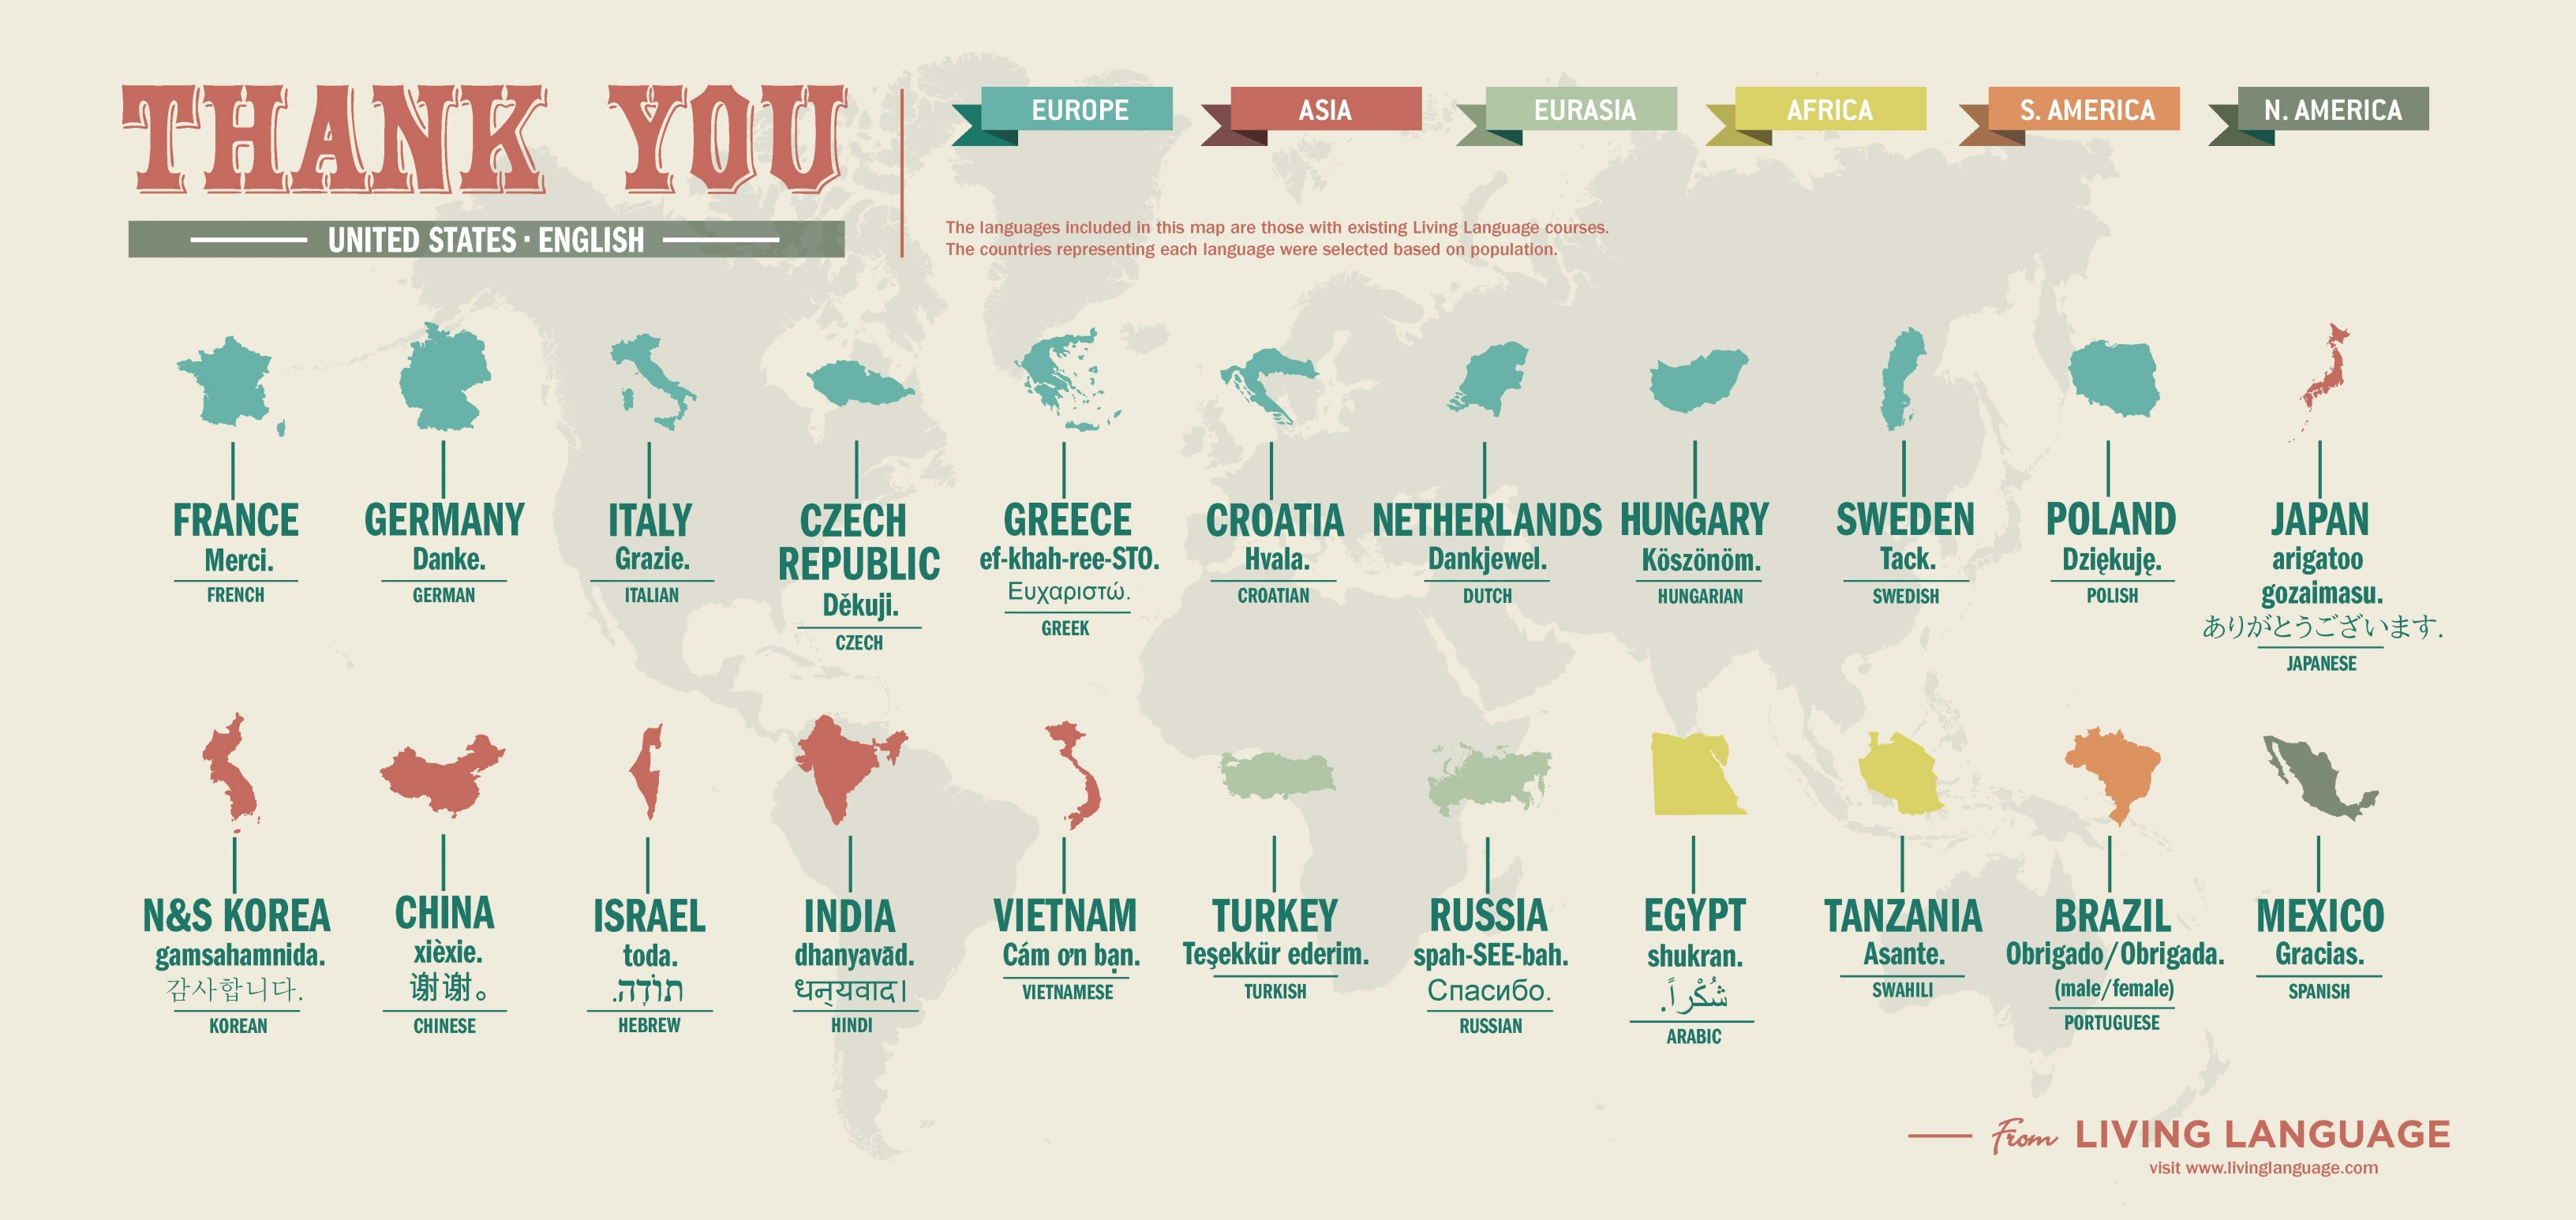 Living-Language-Thank-You-World-Map